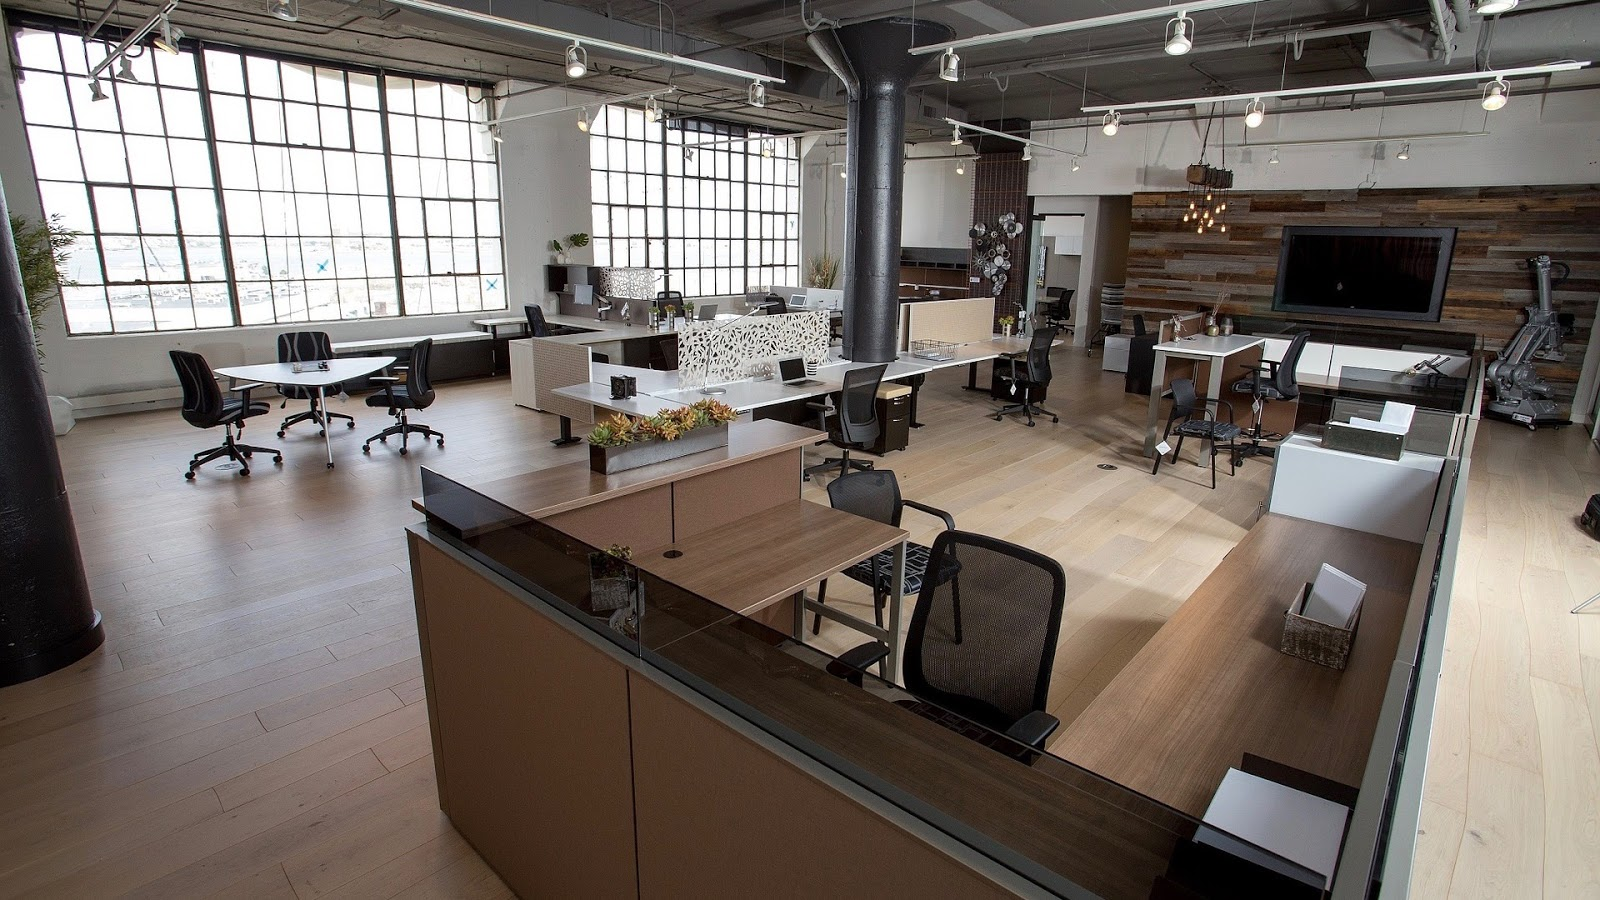 make social distancing in the office a priority